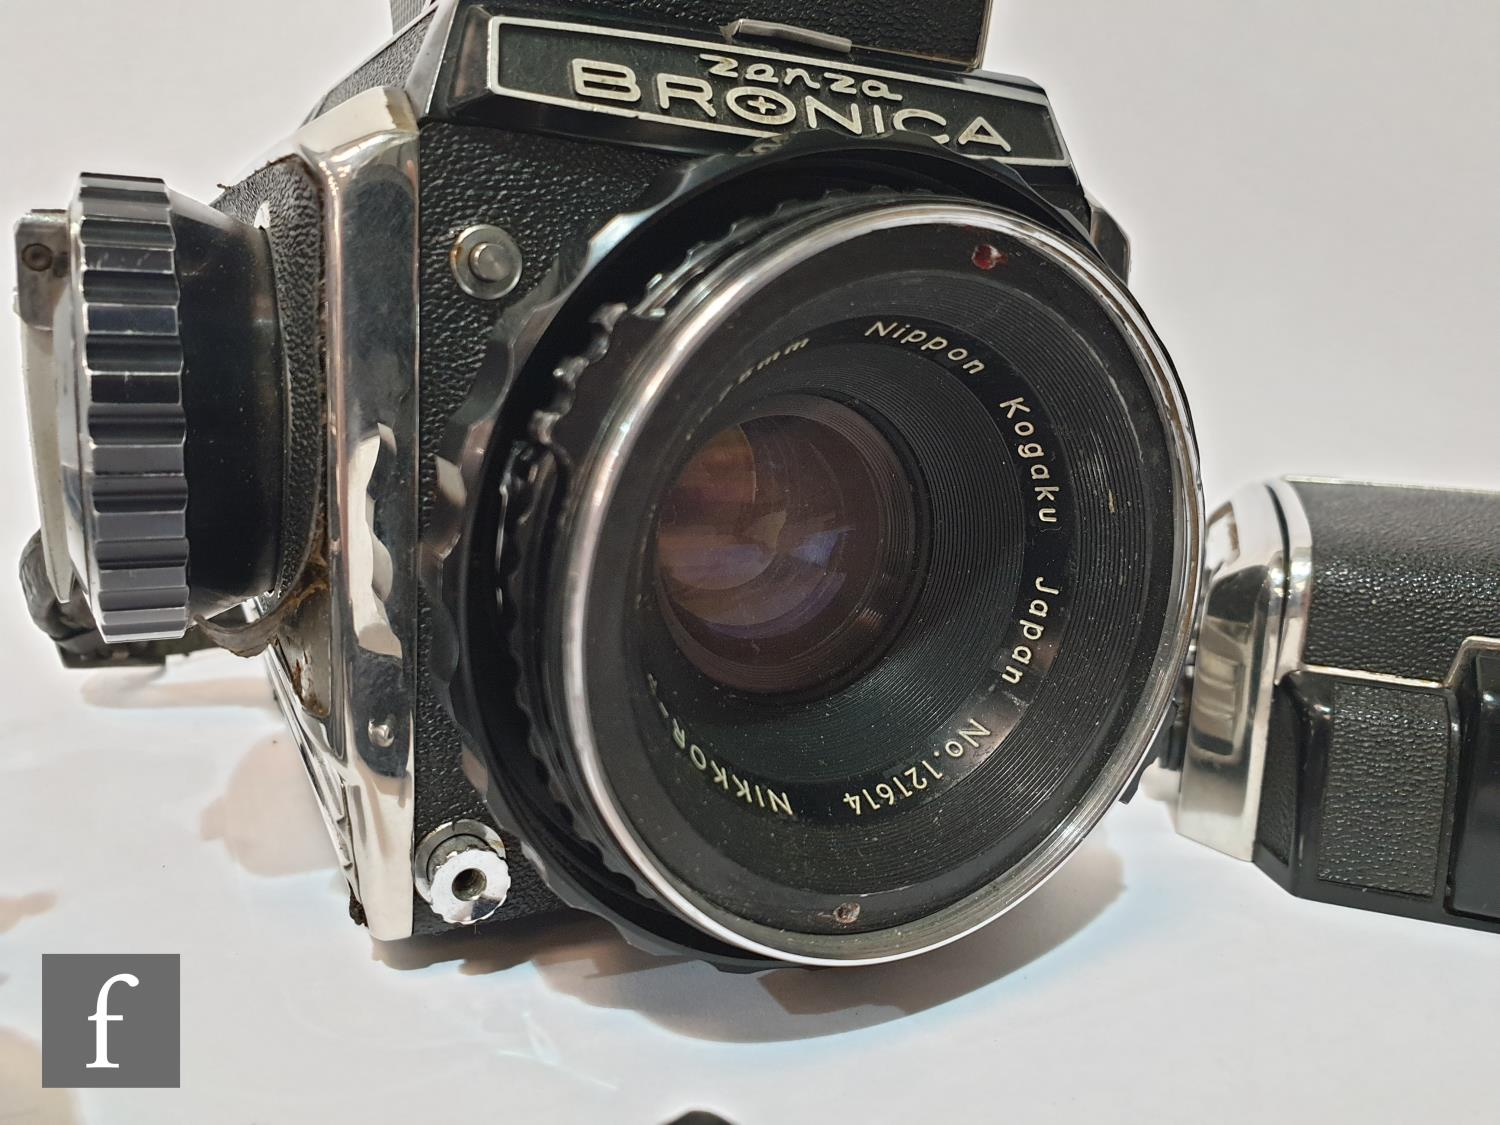 A Zenza Bronica S2 medium format camera outfit, circa 1965, comprising body serial number 75237, - Image 3 of 3